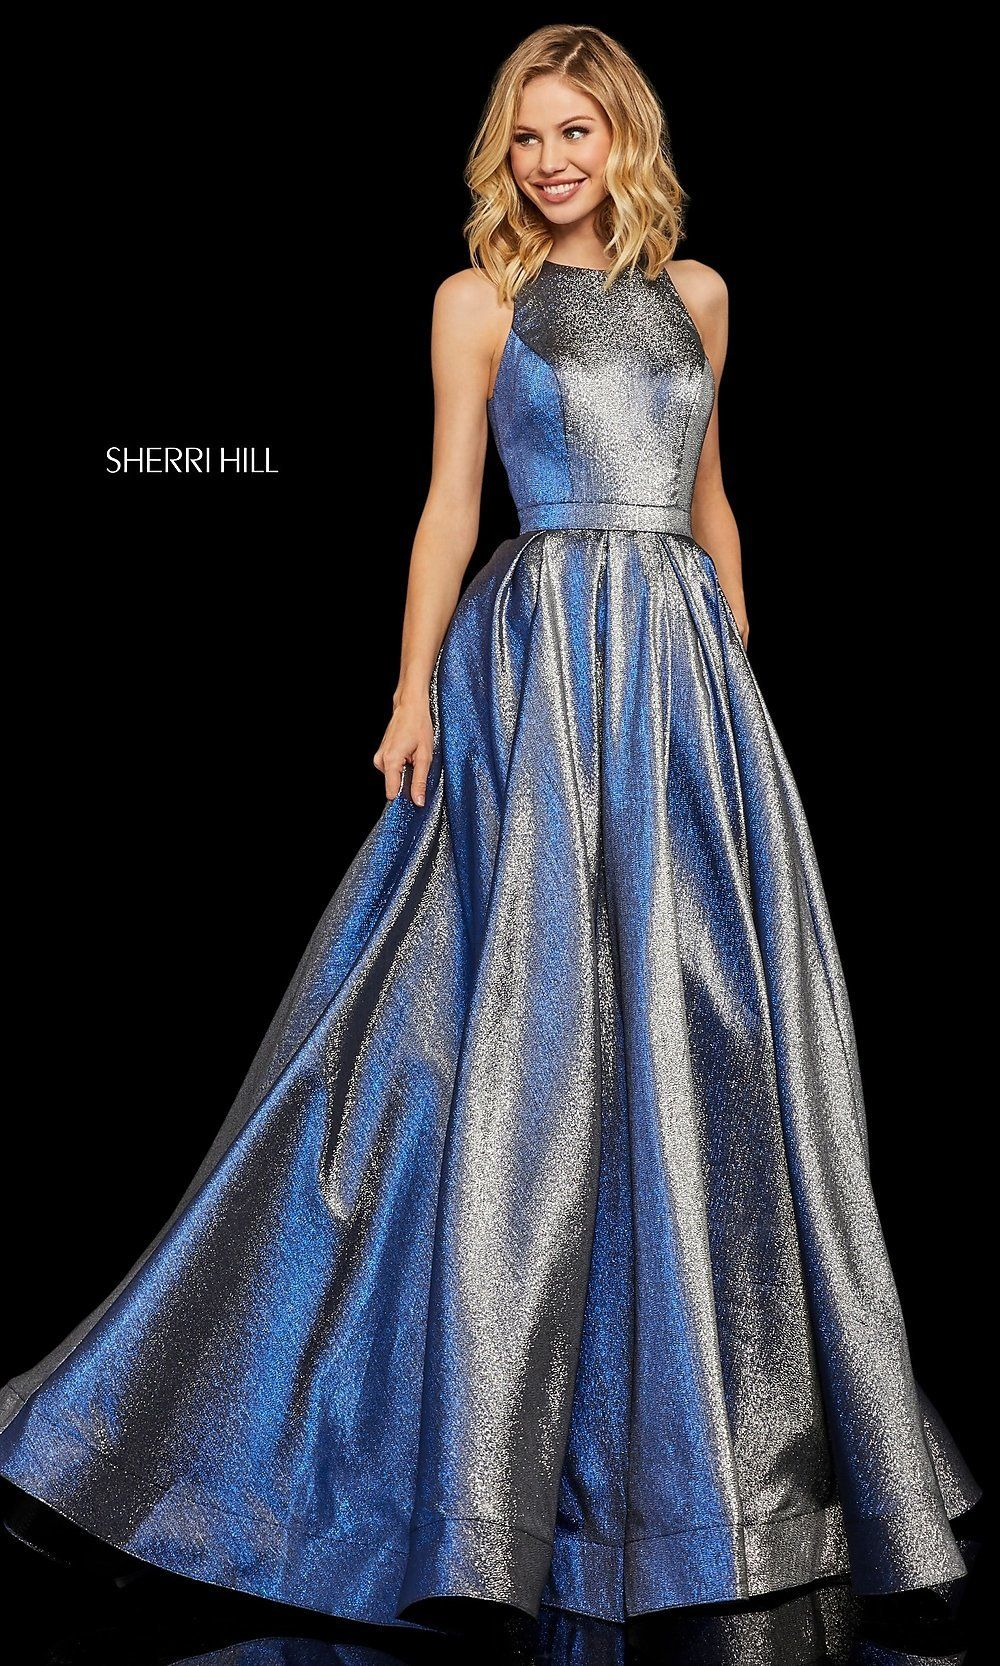 Metallic High Neck A Line Prom Dress With Pockets Prom Dresses With Pockets Metallic Prom Dresses A Line Prom Dresses